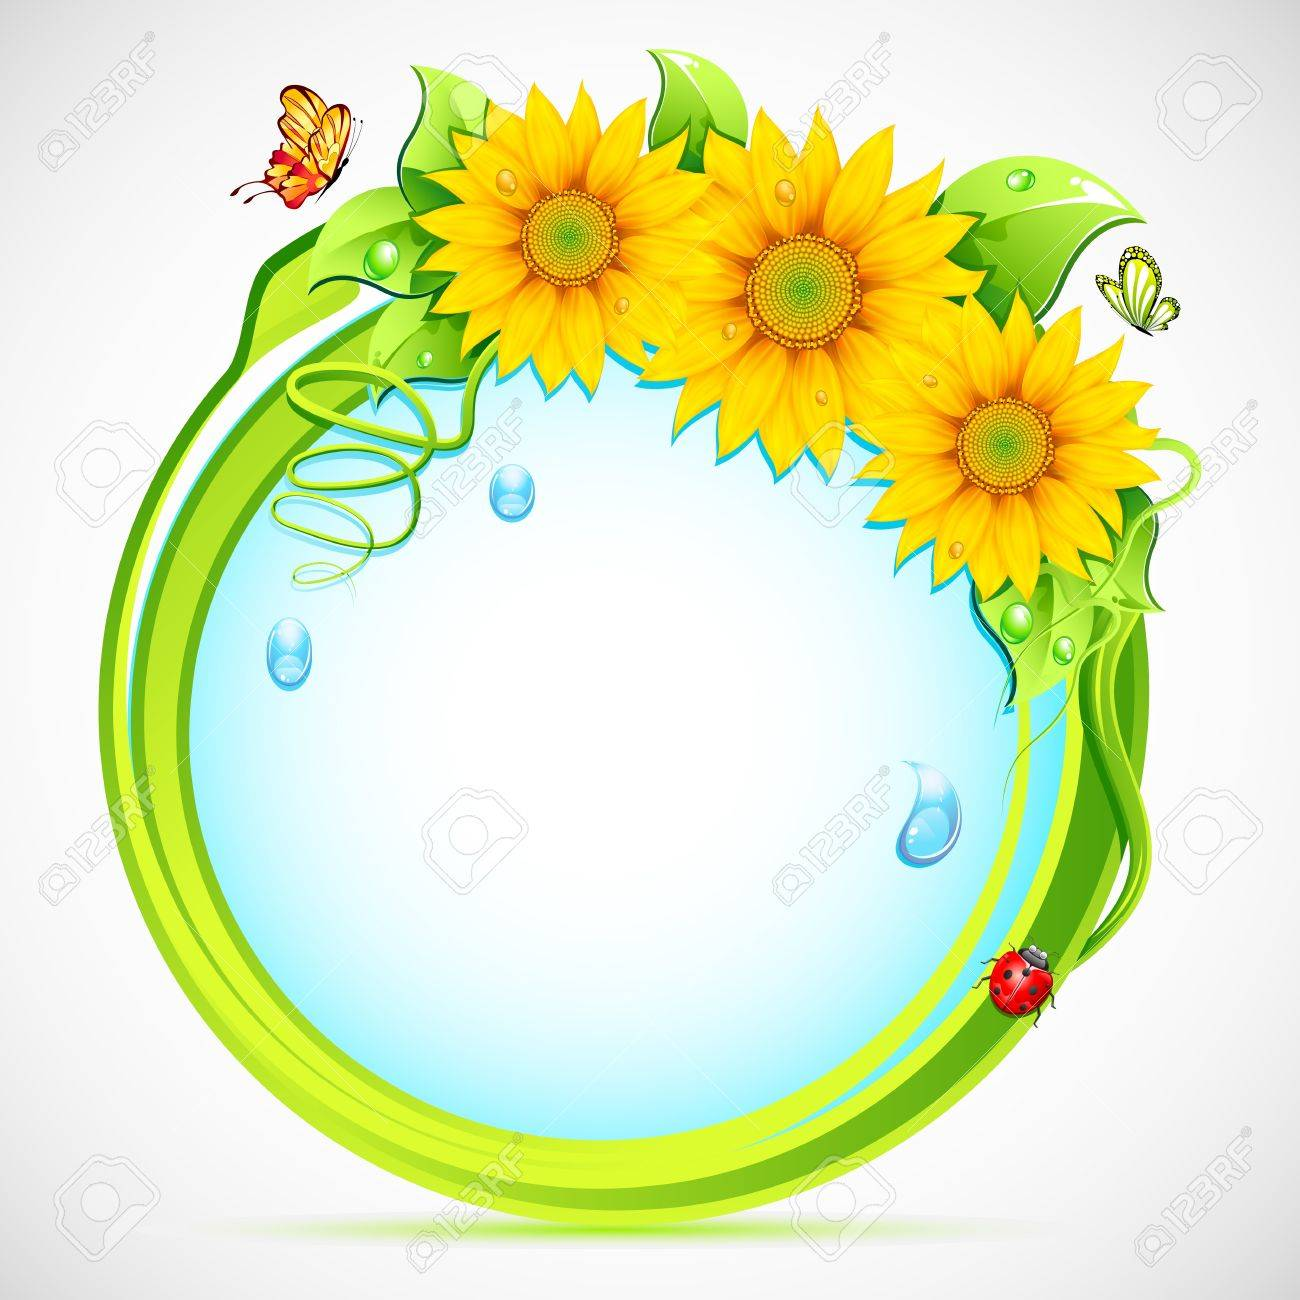 Illustration Of Circle With Sunflower Frame And Butterfly Stock ...